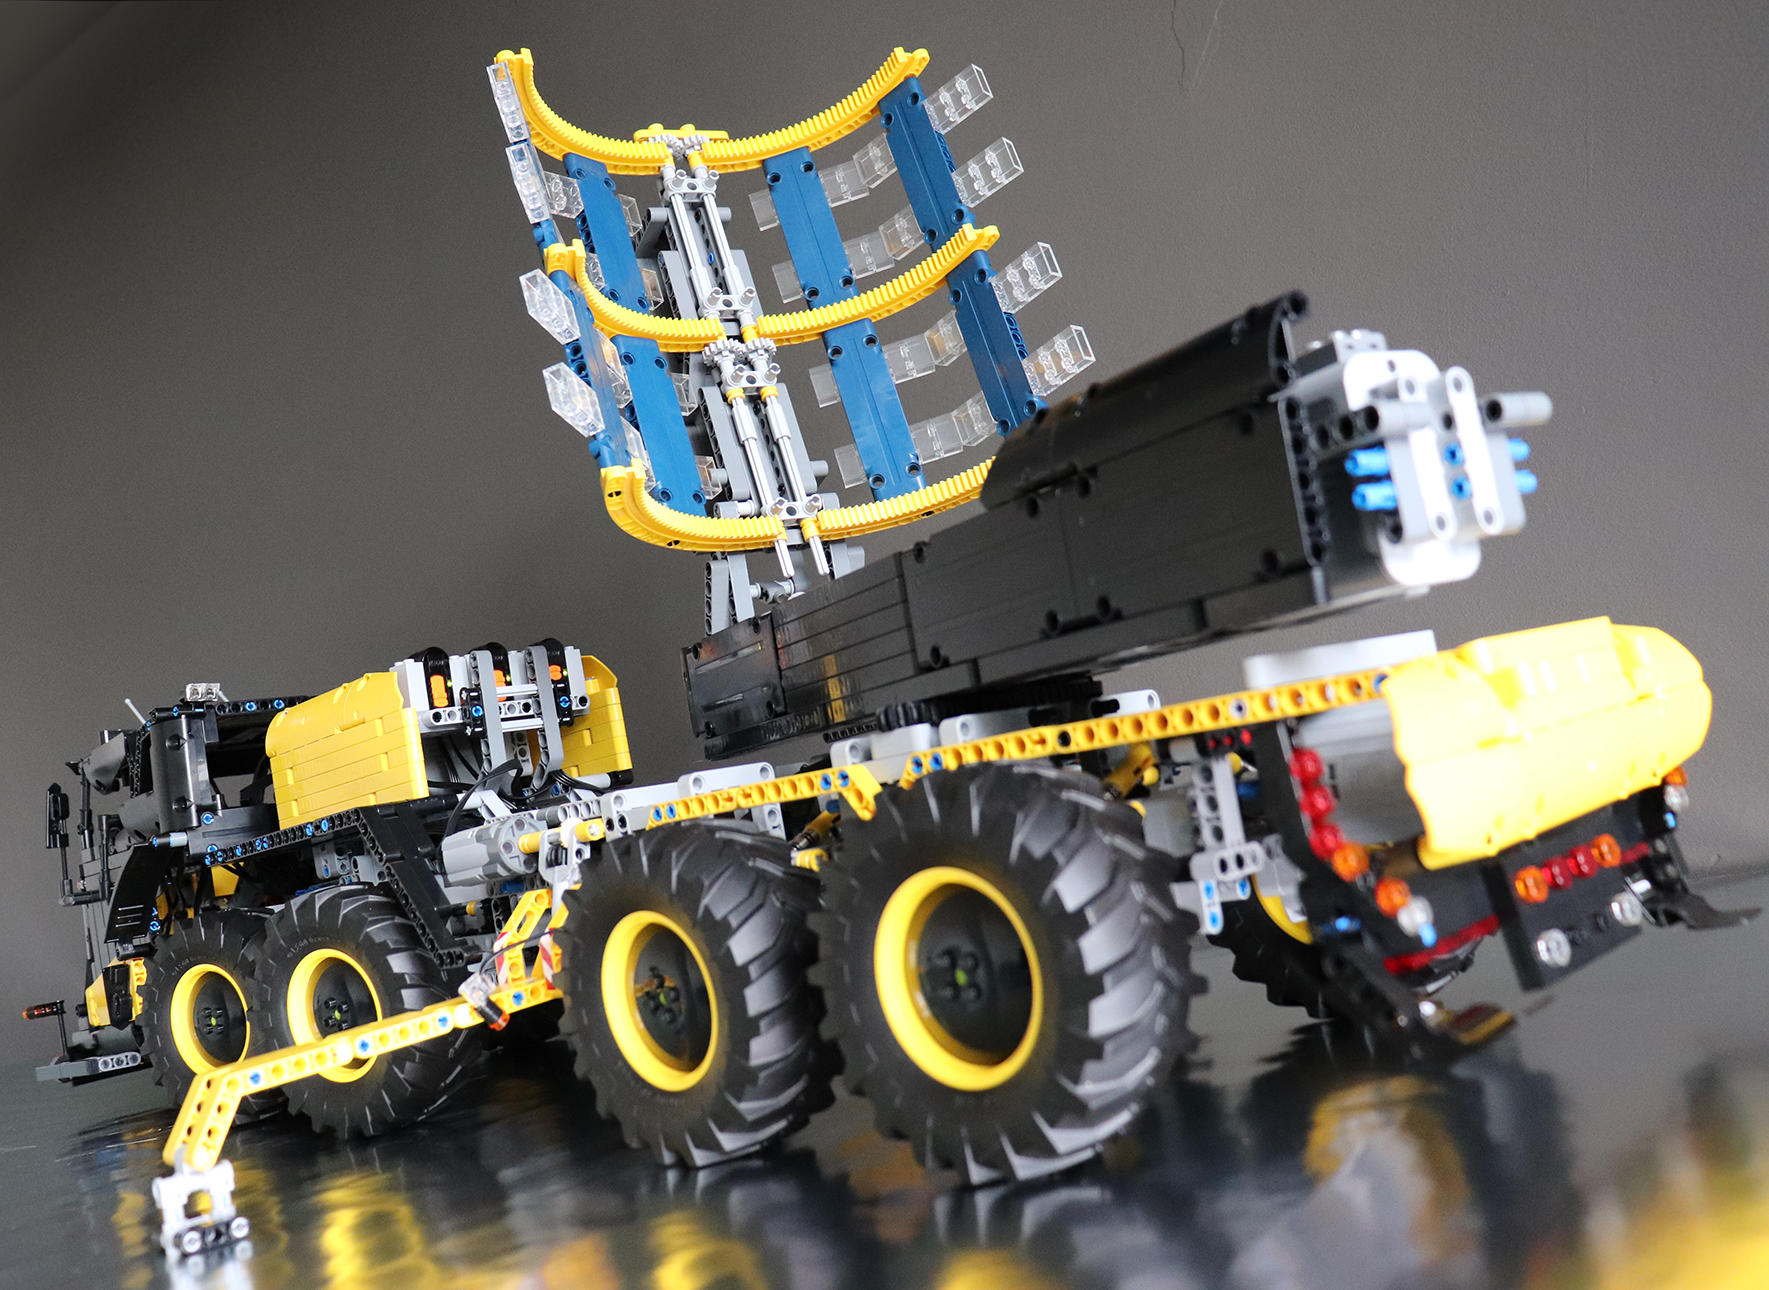 New Exhibition Celebrates Machines of the Future – built in LEGO bricks